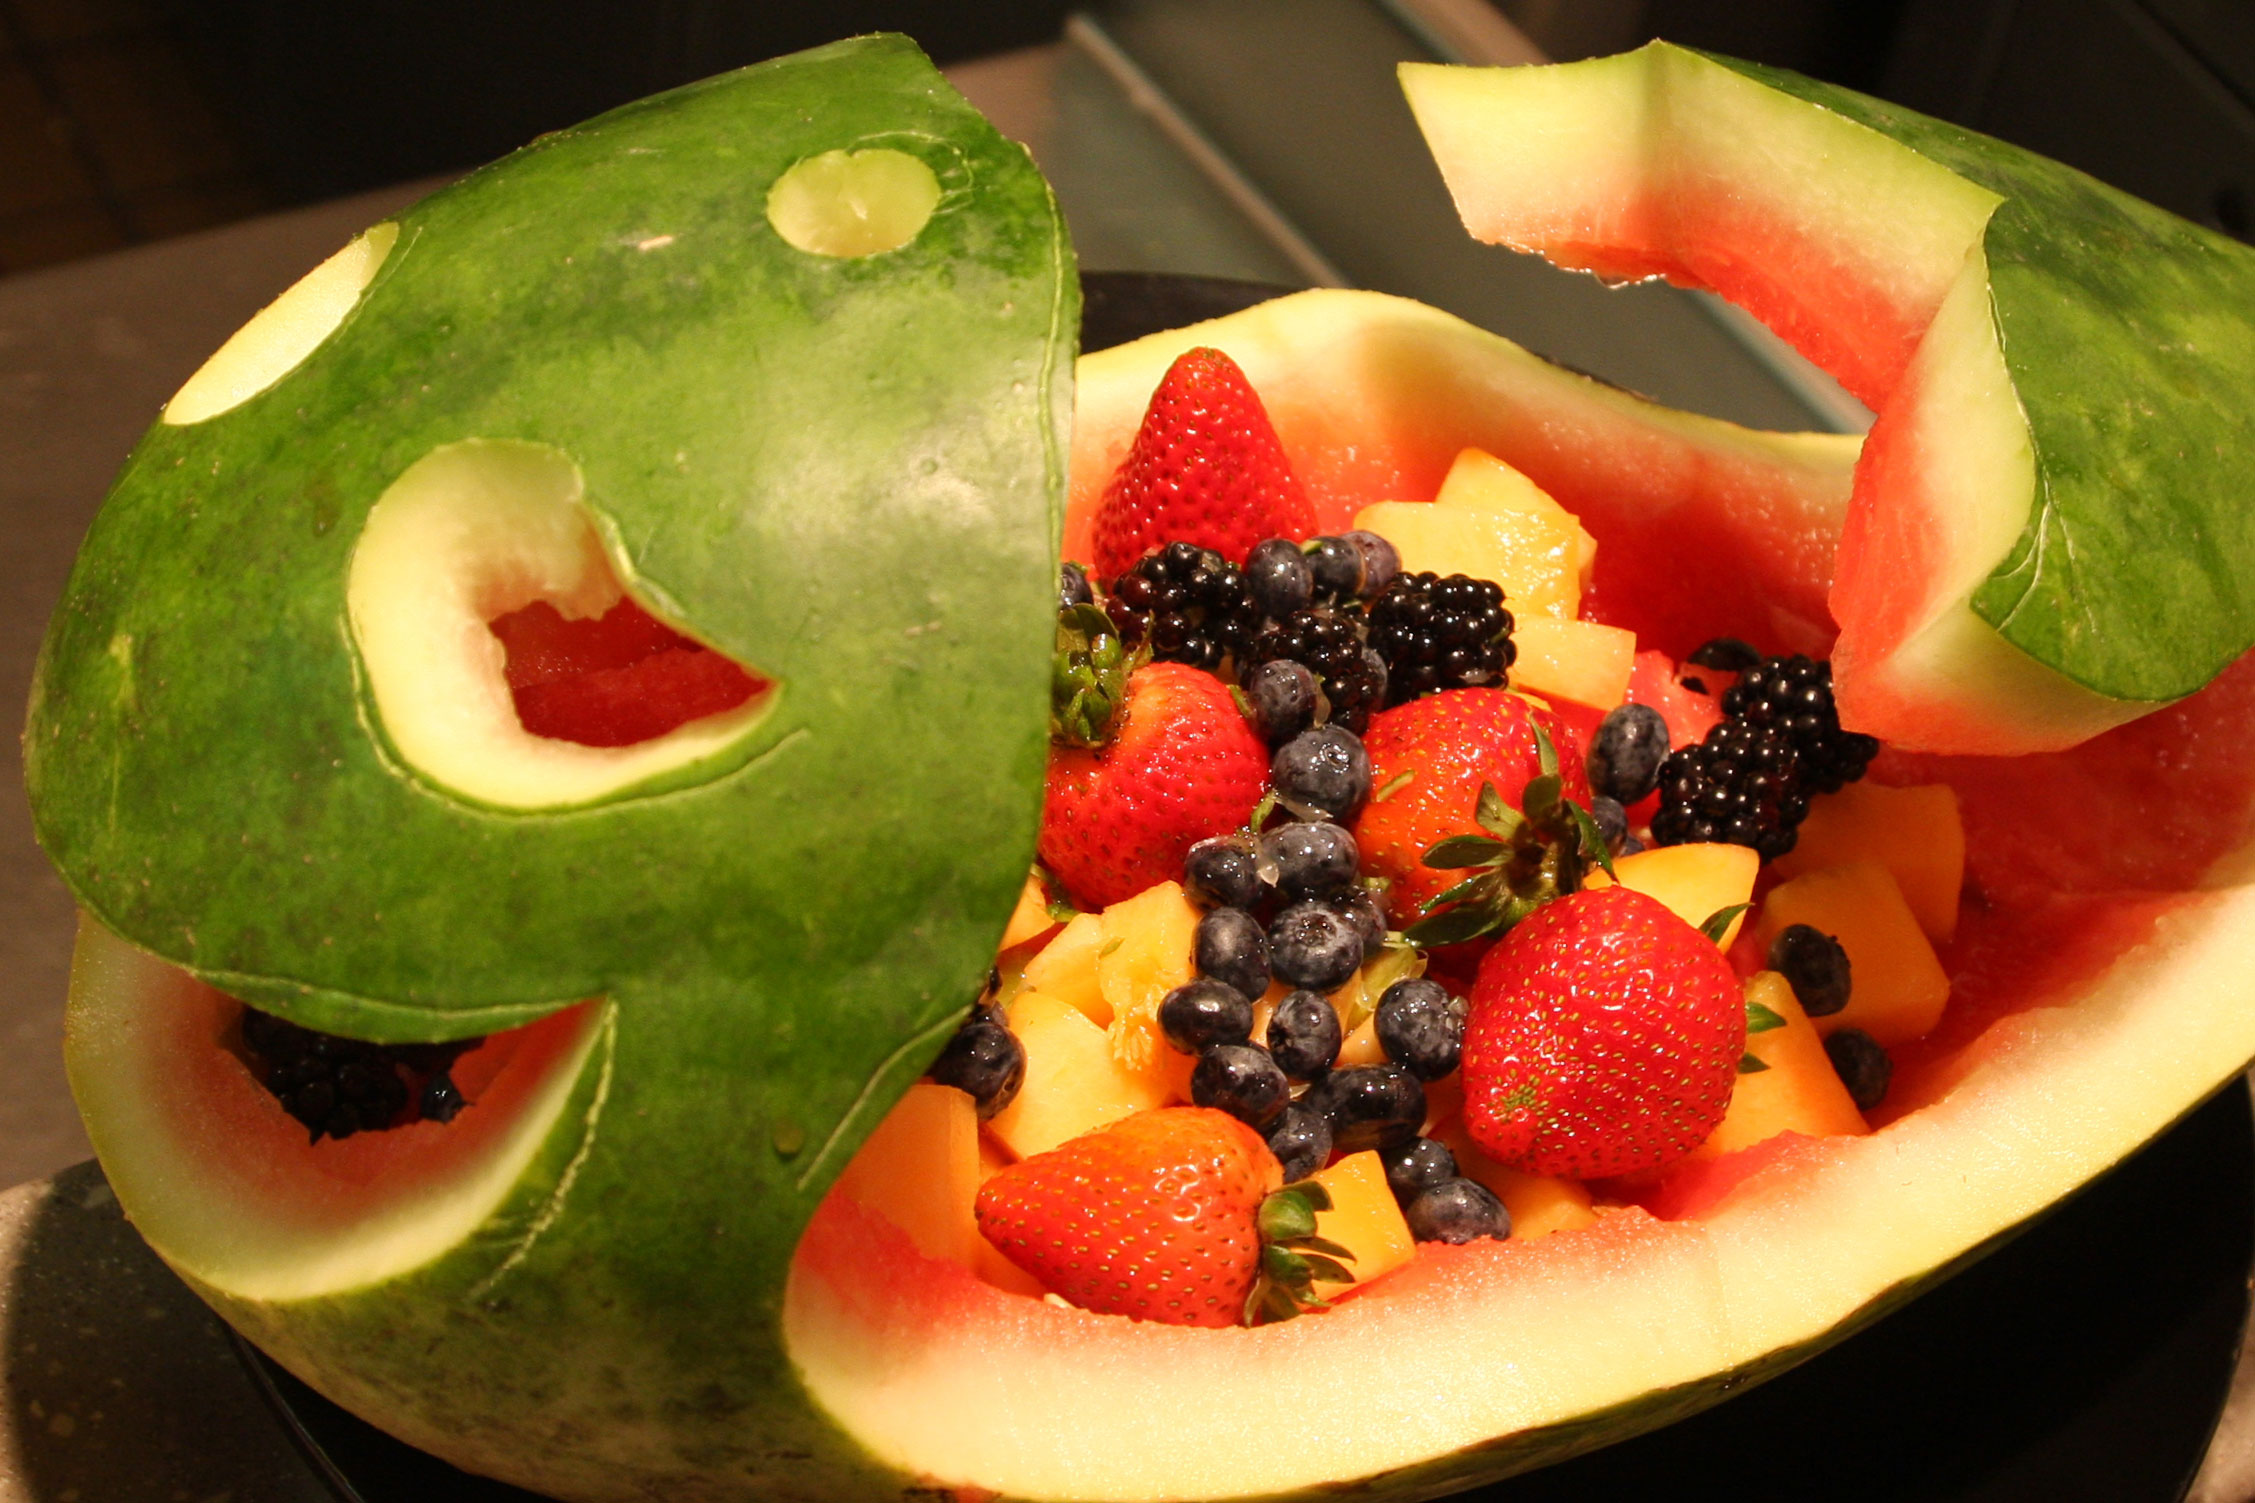 watermelon whale with fruit